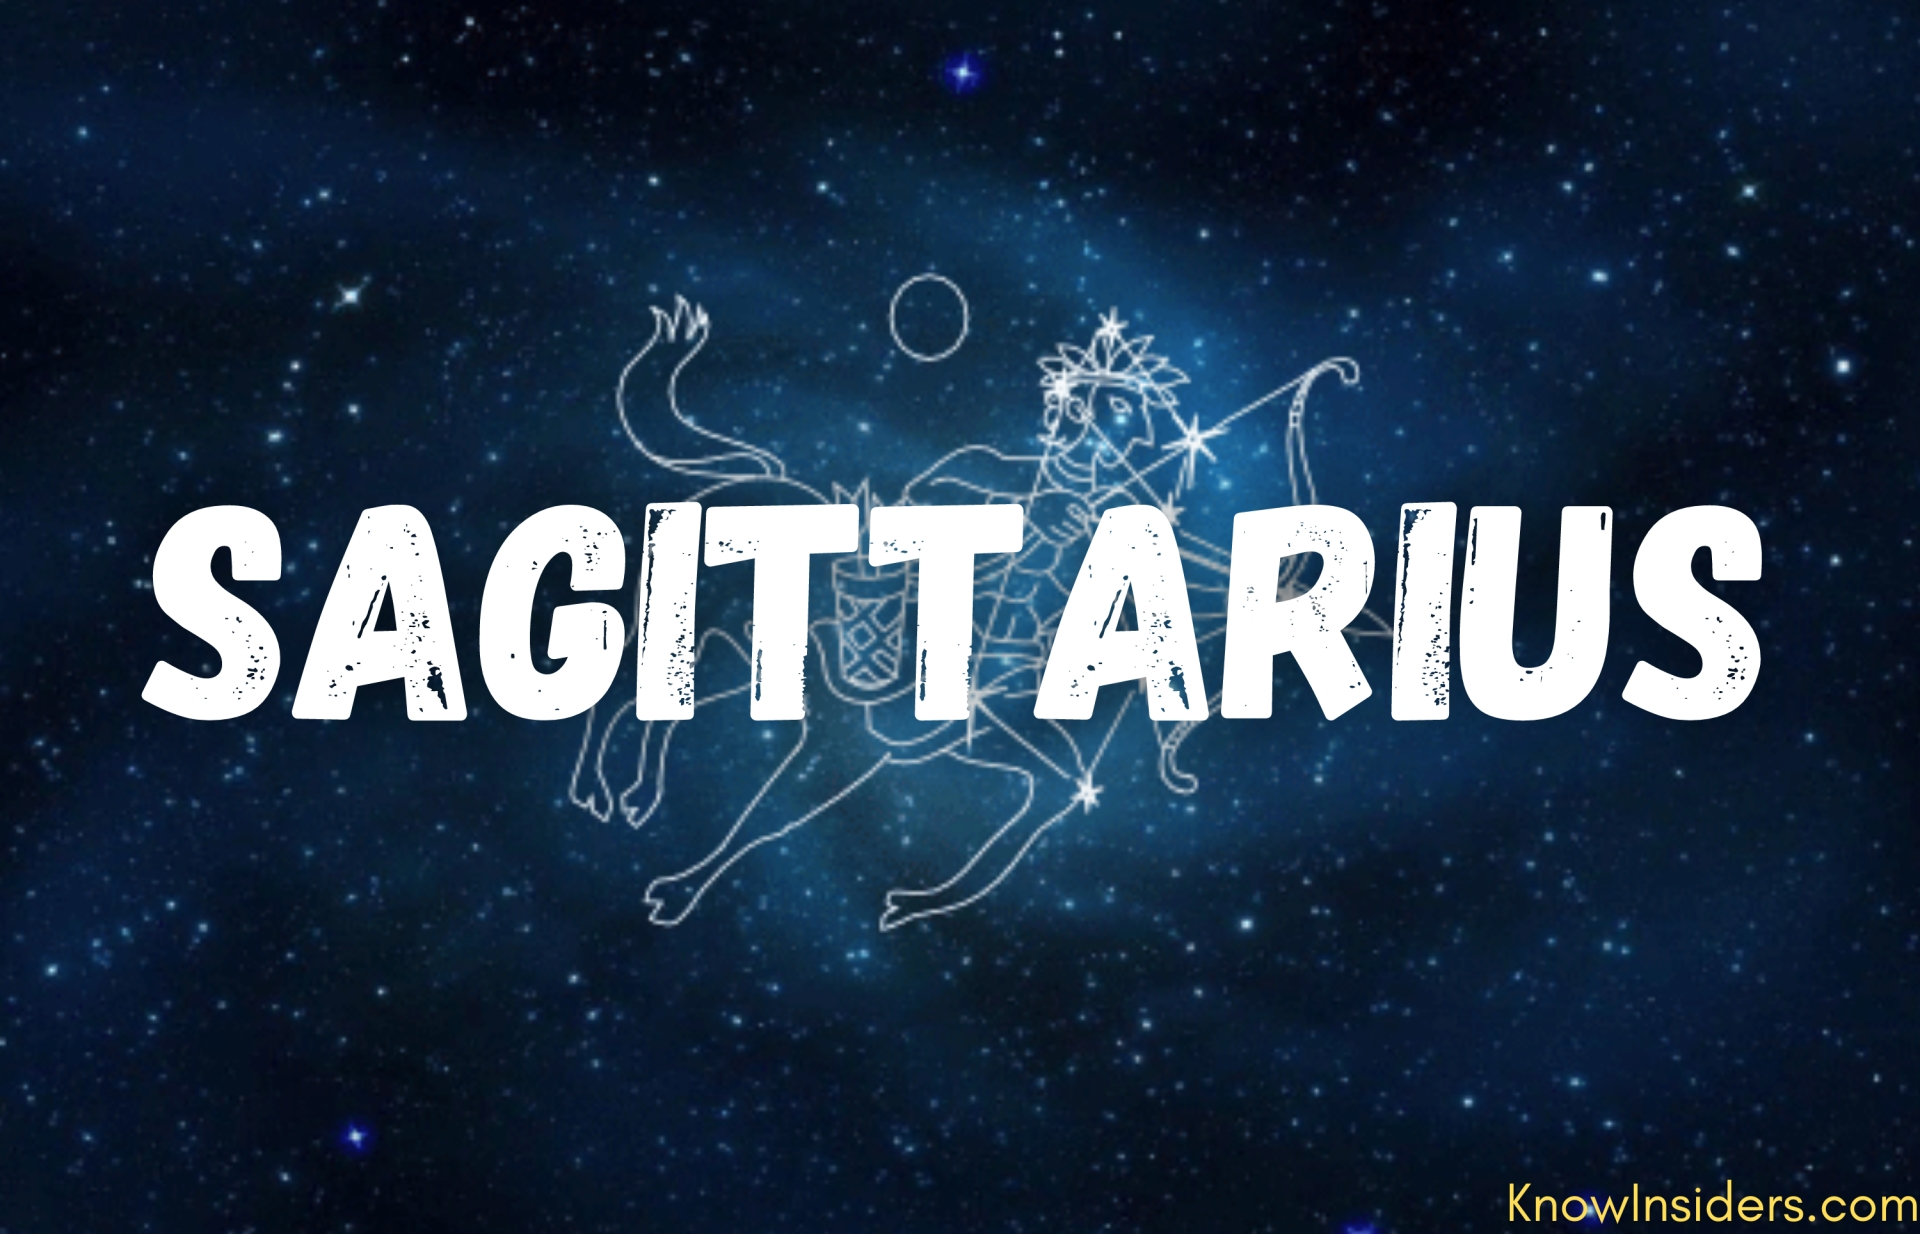 SAGITTARIUS Horoscope August 2021 - Monthly Predictions for Love, Money, Career and Health